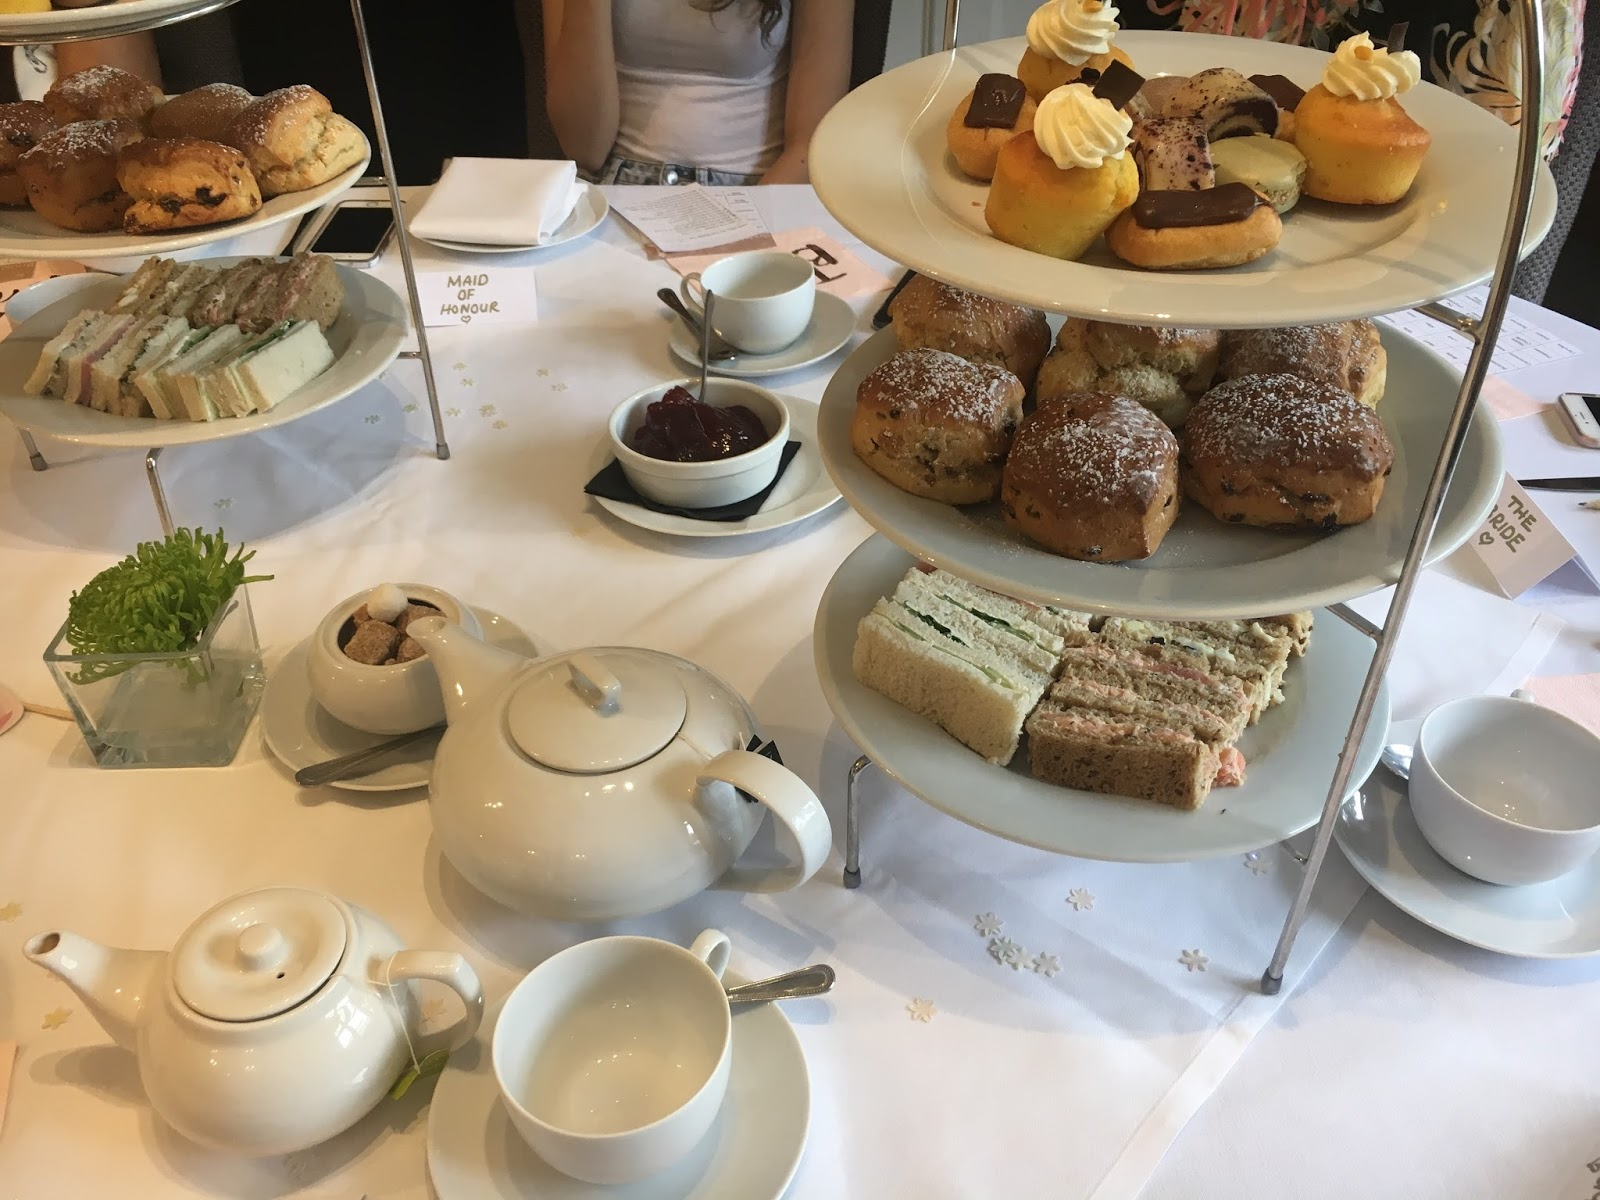 On Sunday I Organised An Afternoon Tea Hen Party For My Sister At Rowhill Grange Hotel Utopia Spa In Kent This Place Is A Lovely Hidden Gem Tucked Away